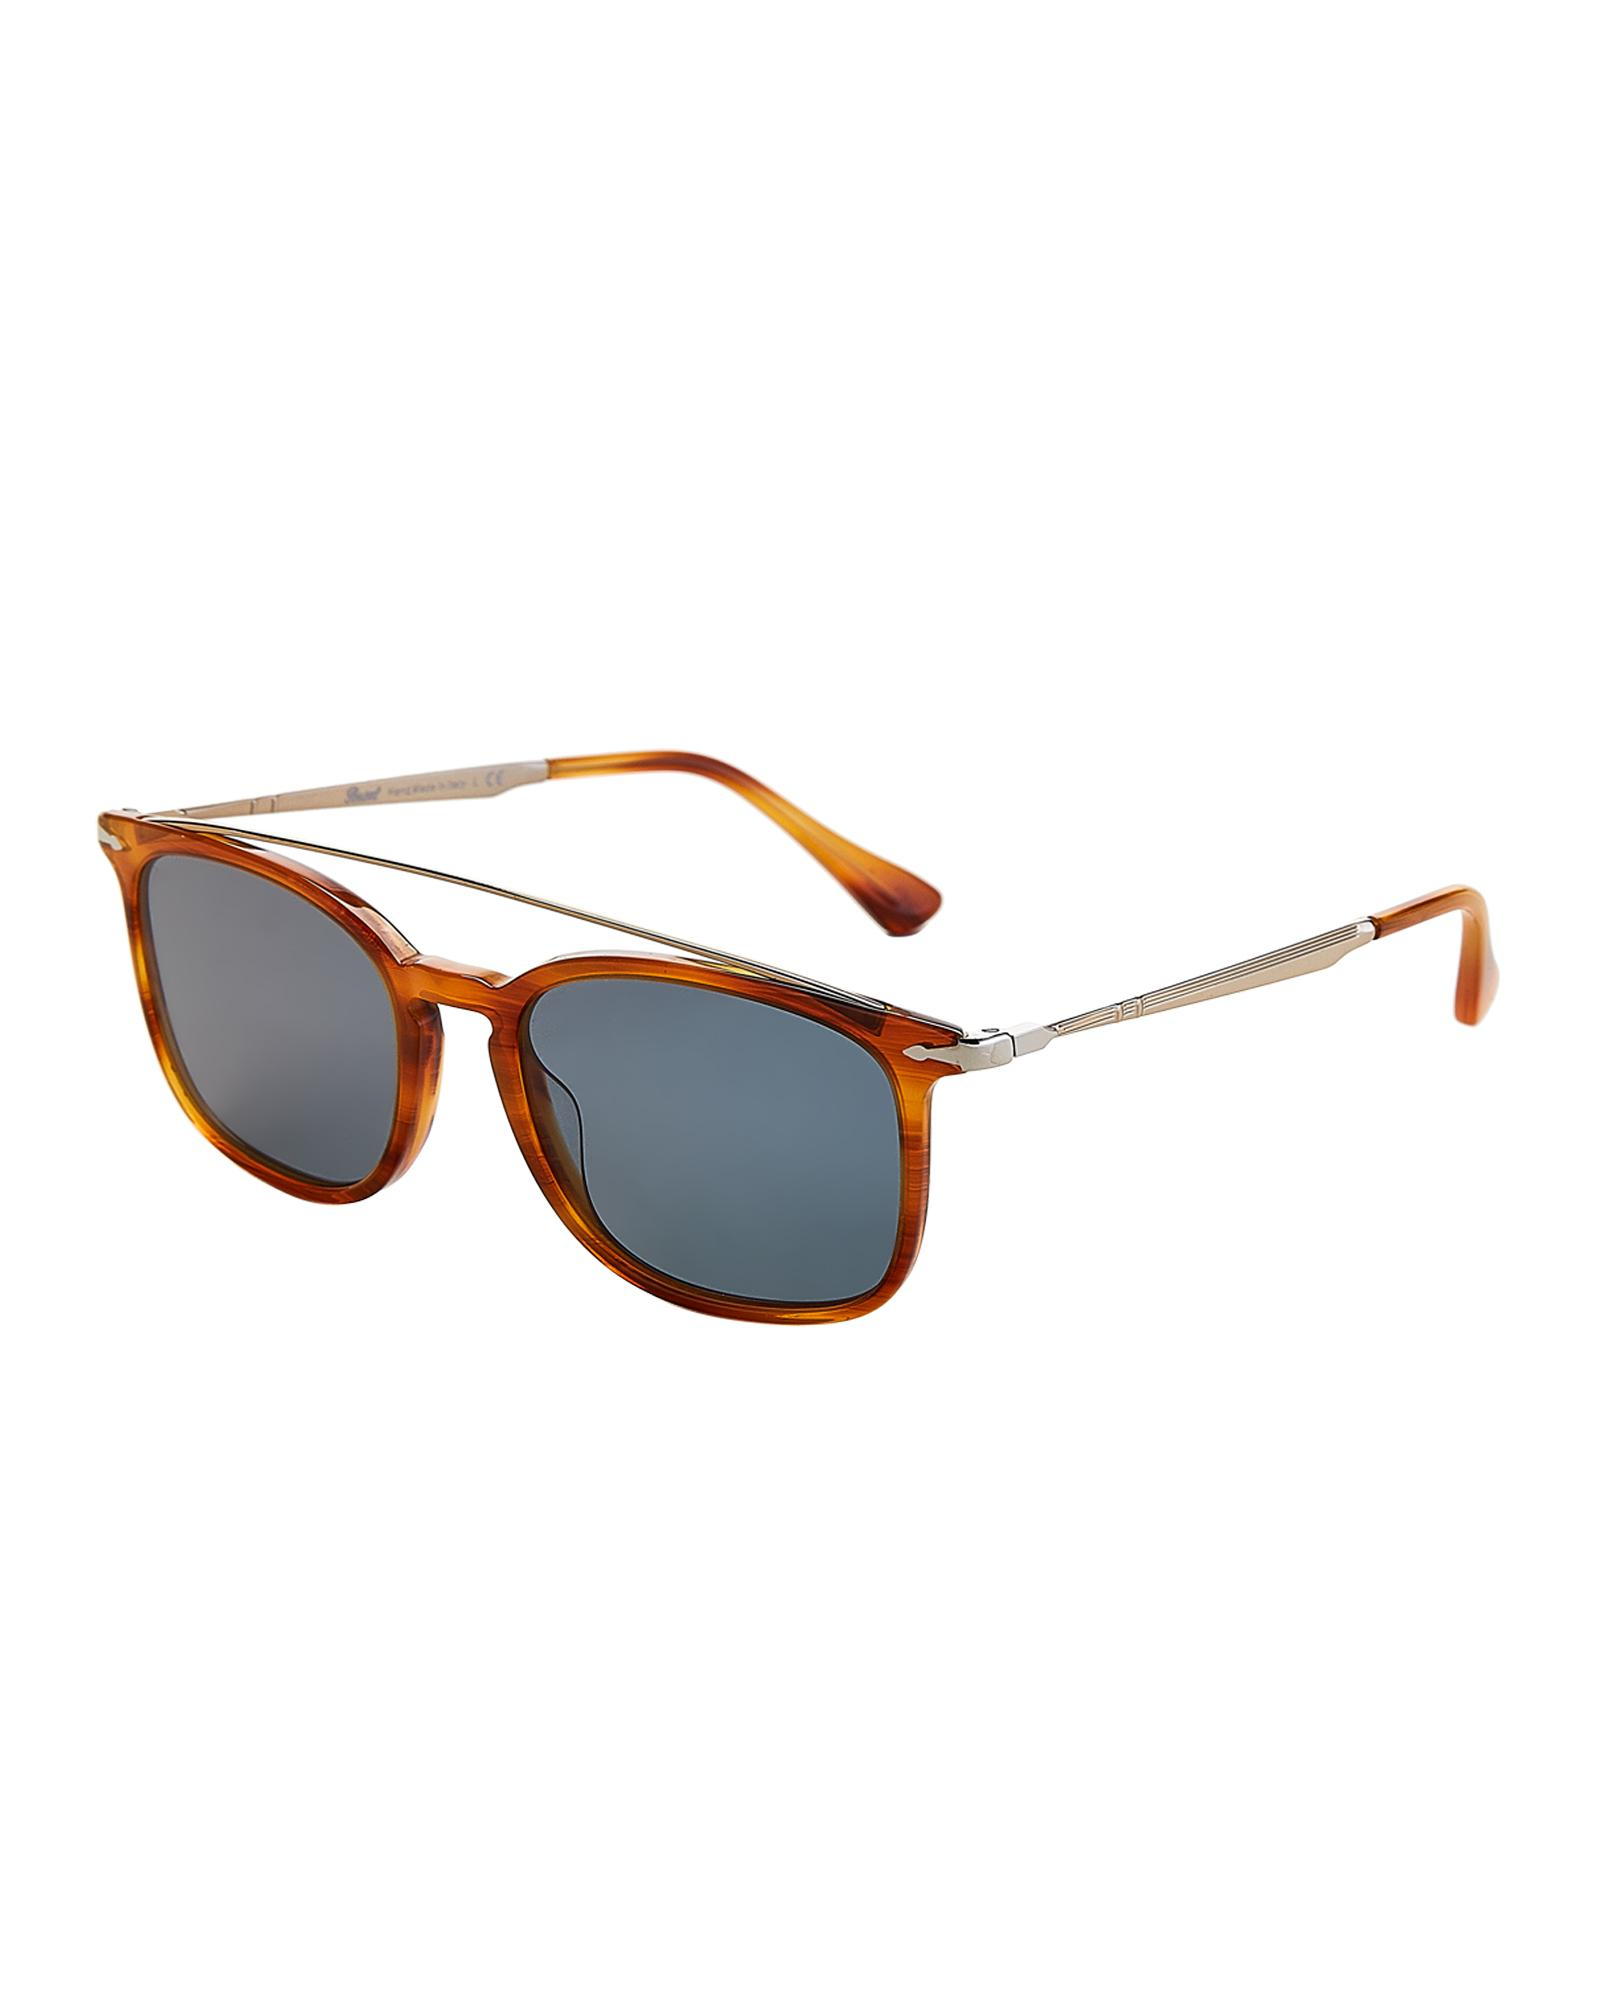 177e671d4fca1 Persol. Women s White Po3173s Light Tortoiseshell-look Square Calligrapher  Edition Sunglasses